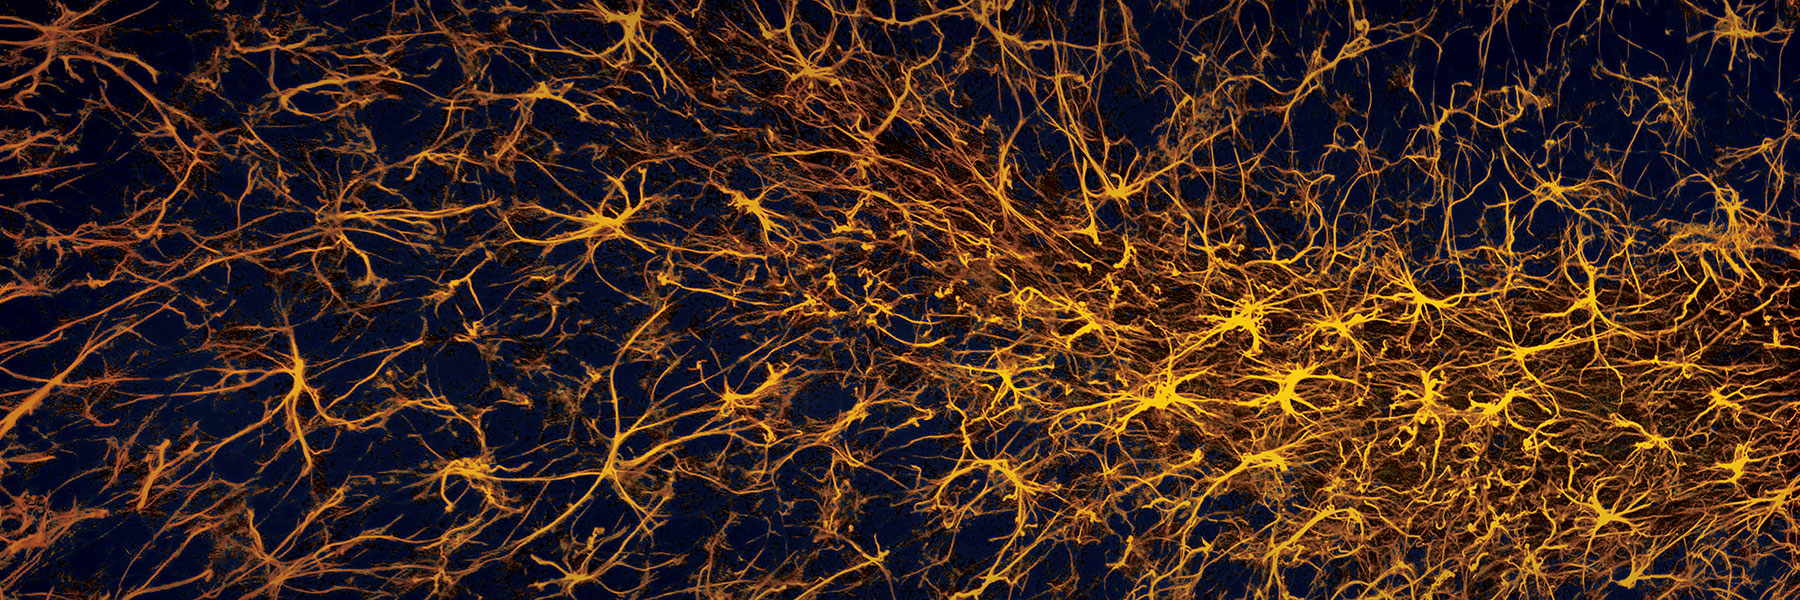 illustration of neurons that look like space and a person's face